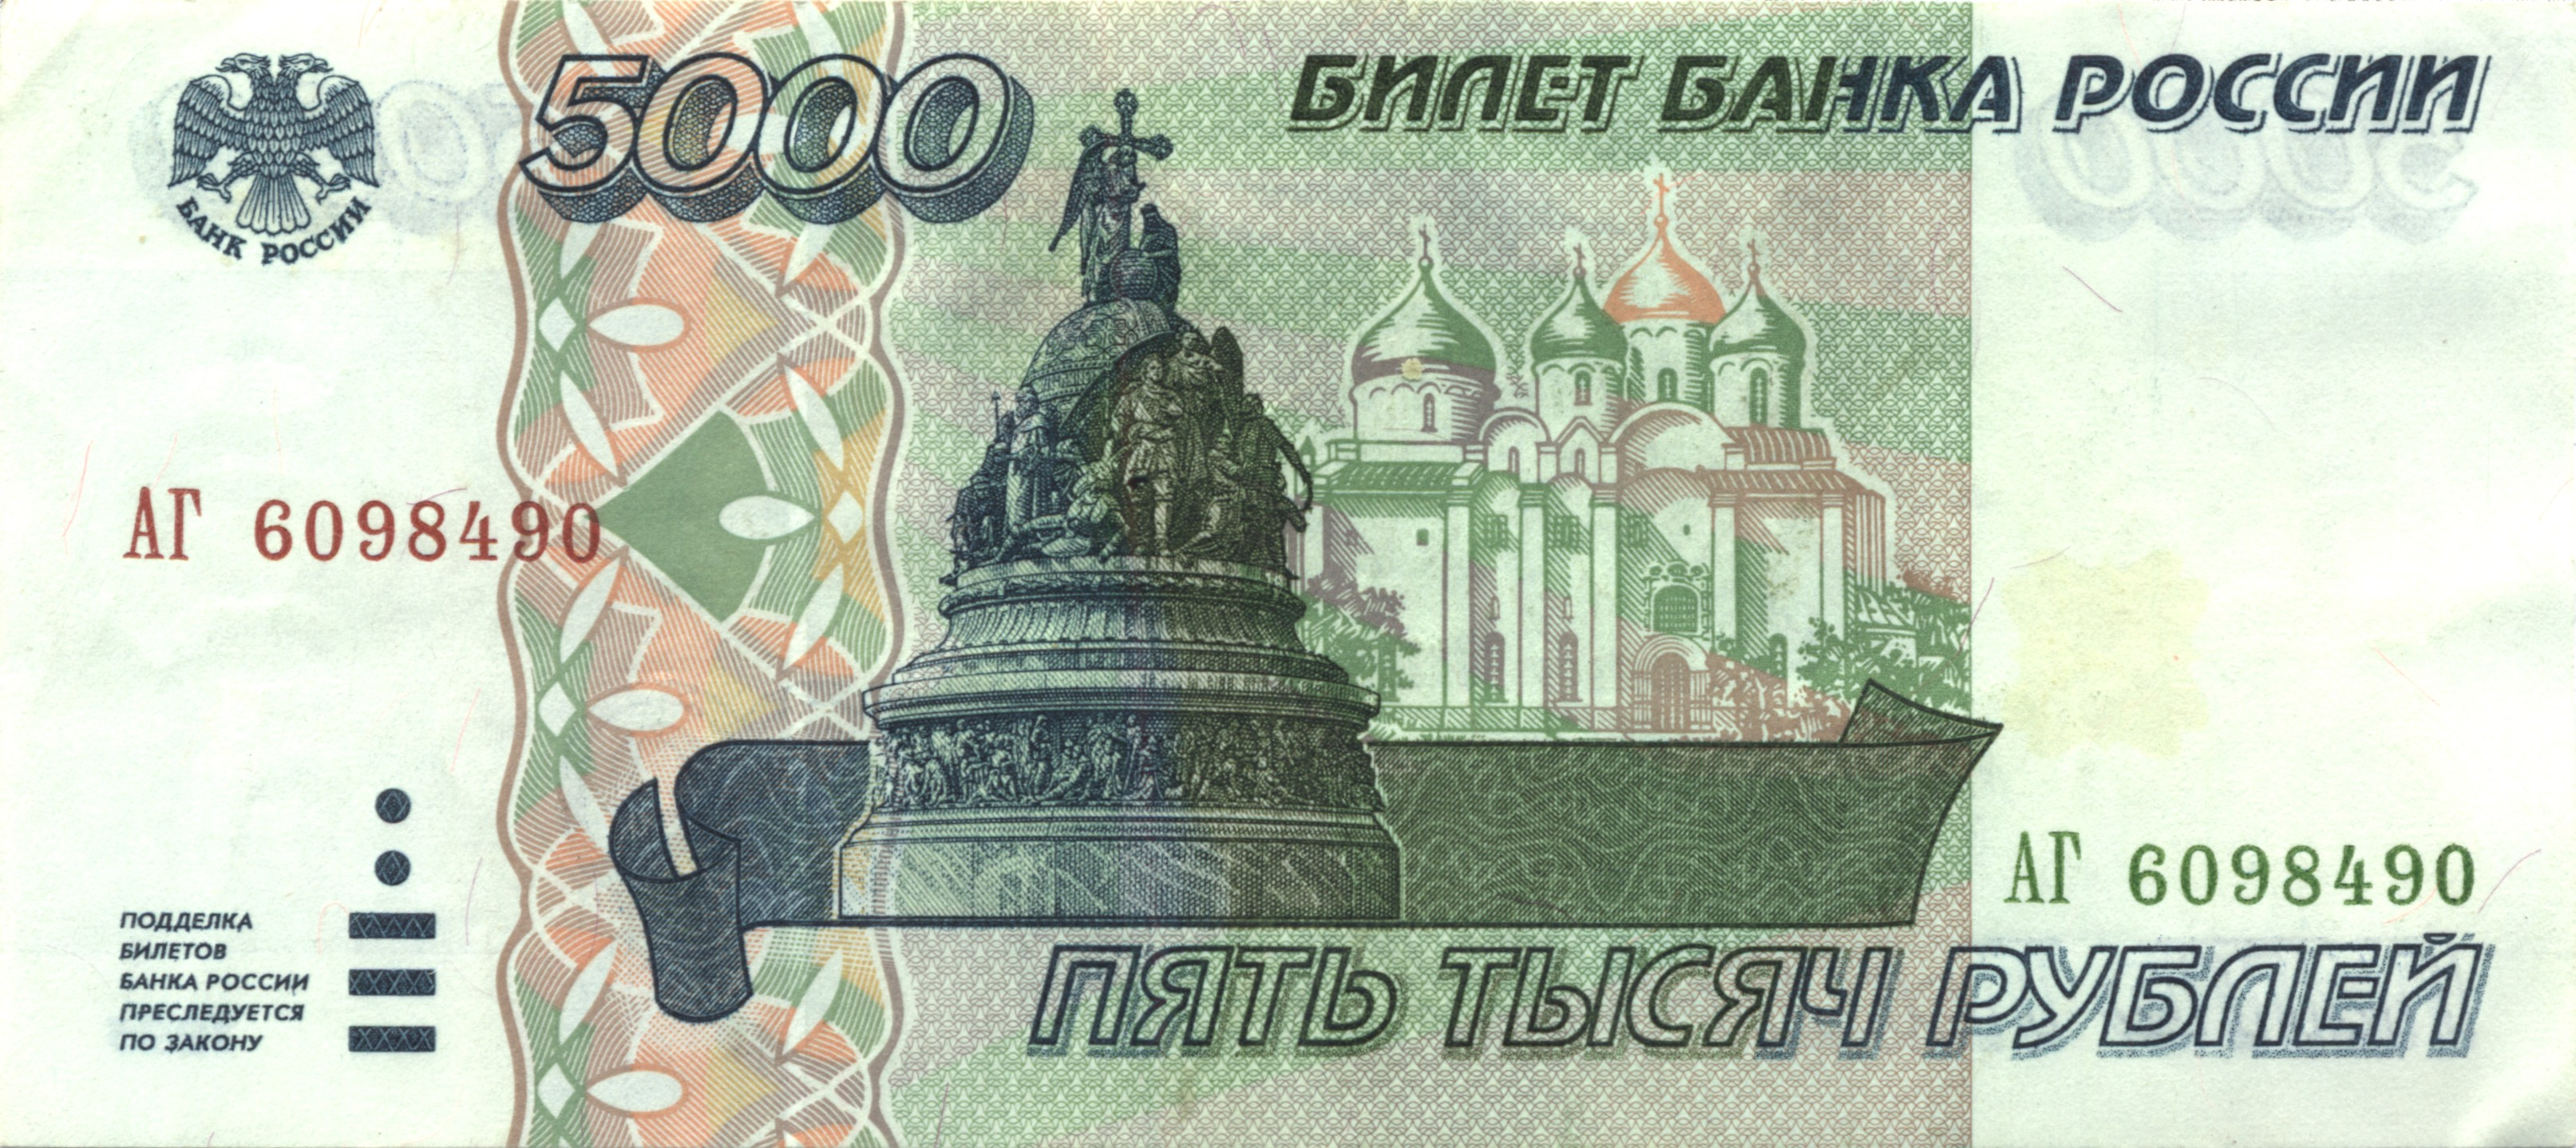 Banknote 5000 rubles (1995) front.jpg